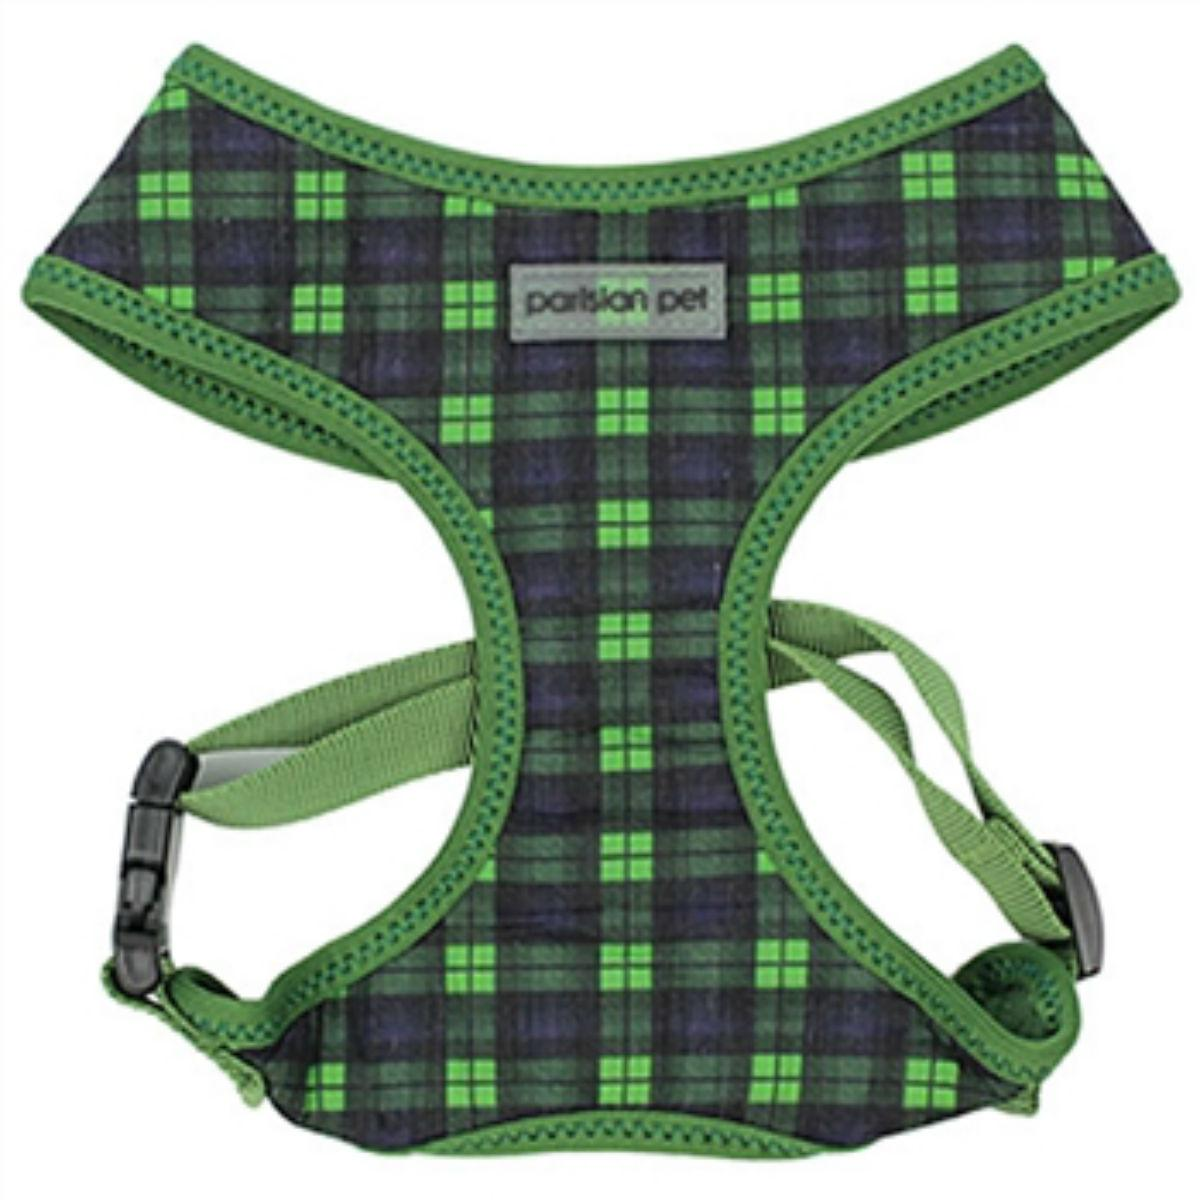 Parisian Pet Scottish Plaid Dog Harness - Green/Blue